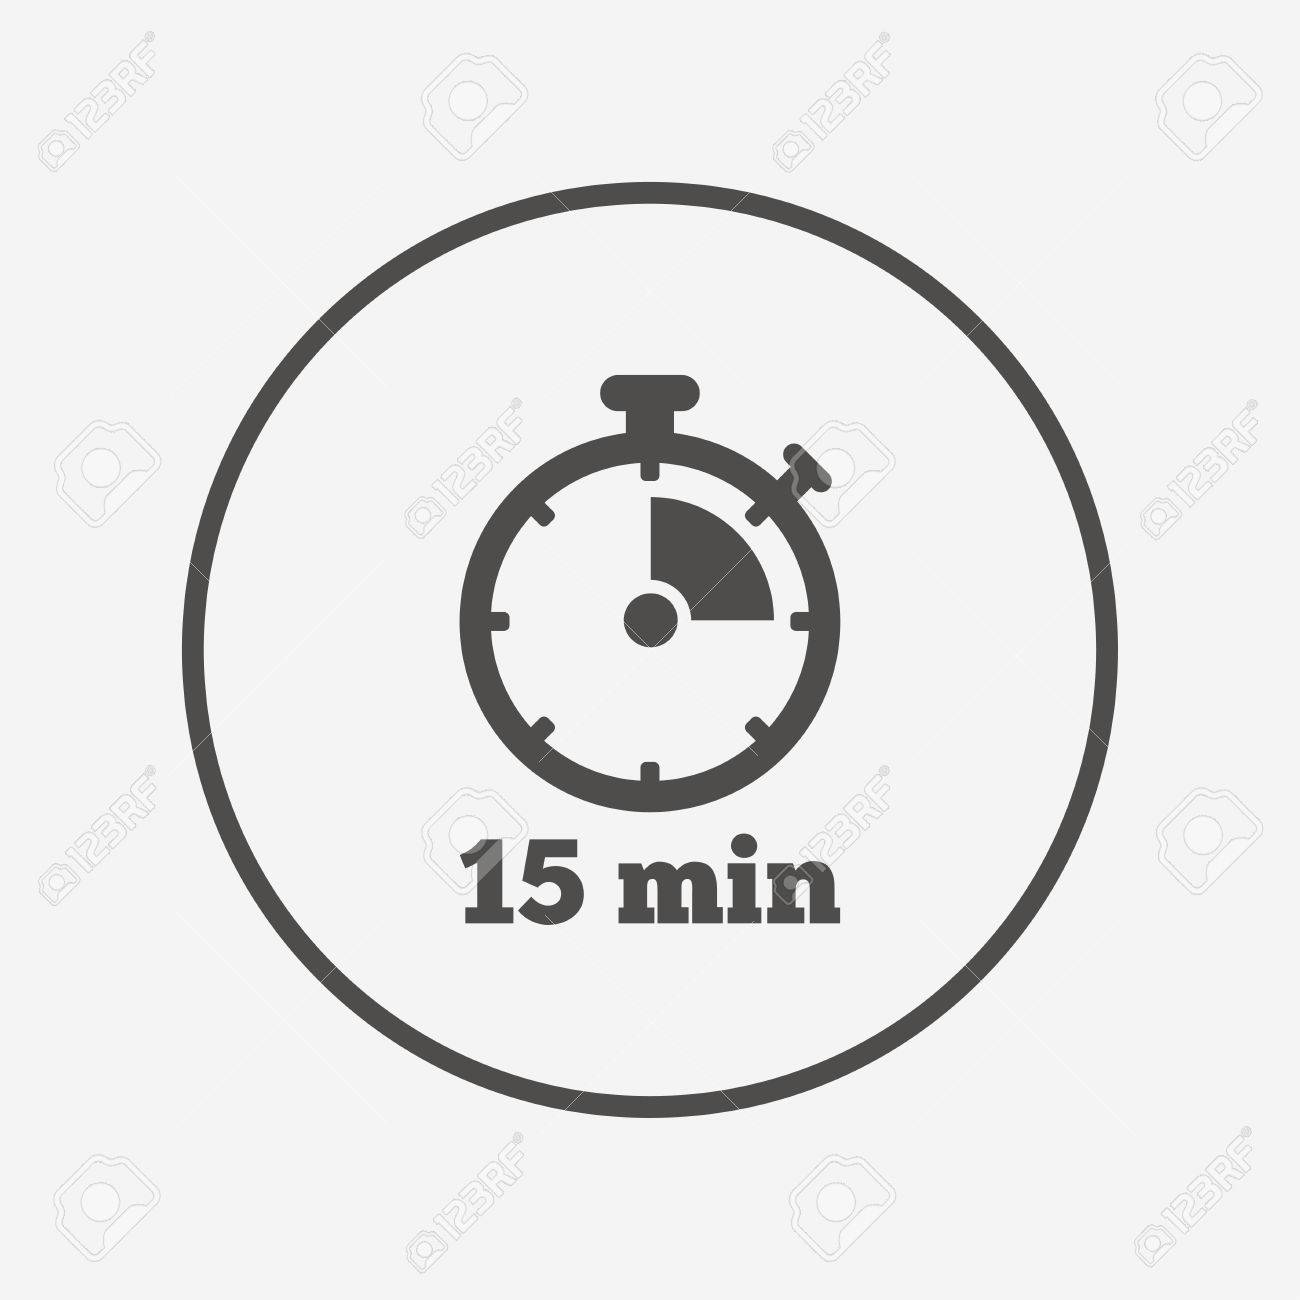 Timer sign icon  15 minutes stopwatch symbol  Flat timer icon